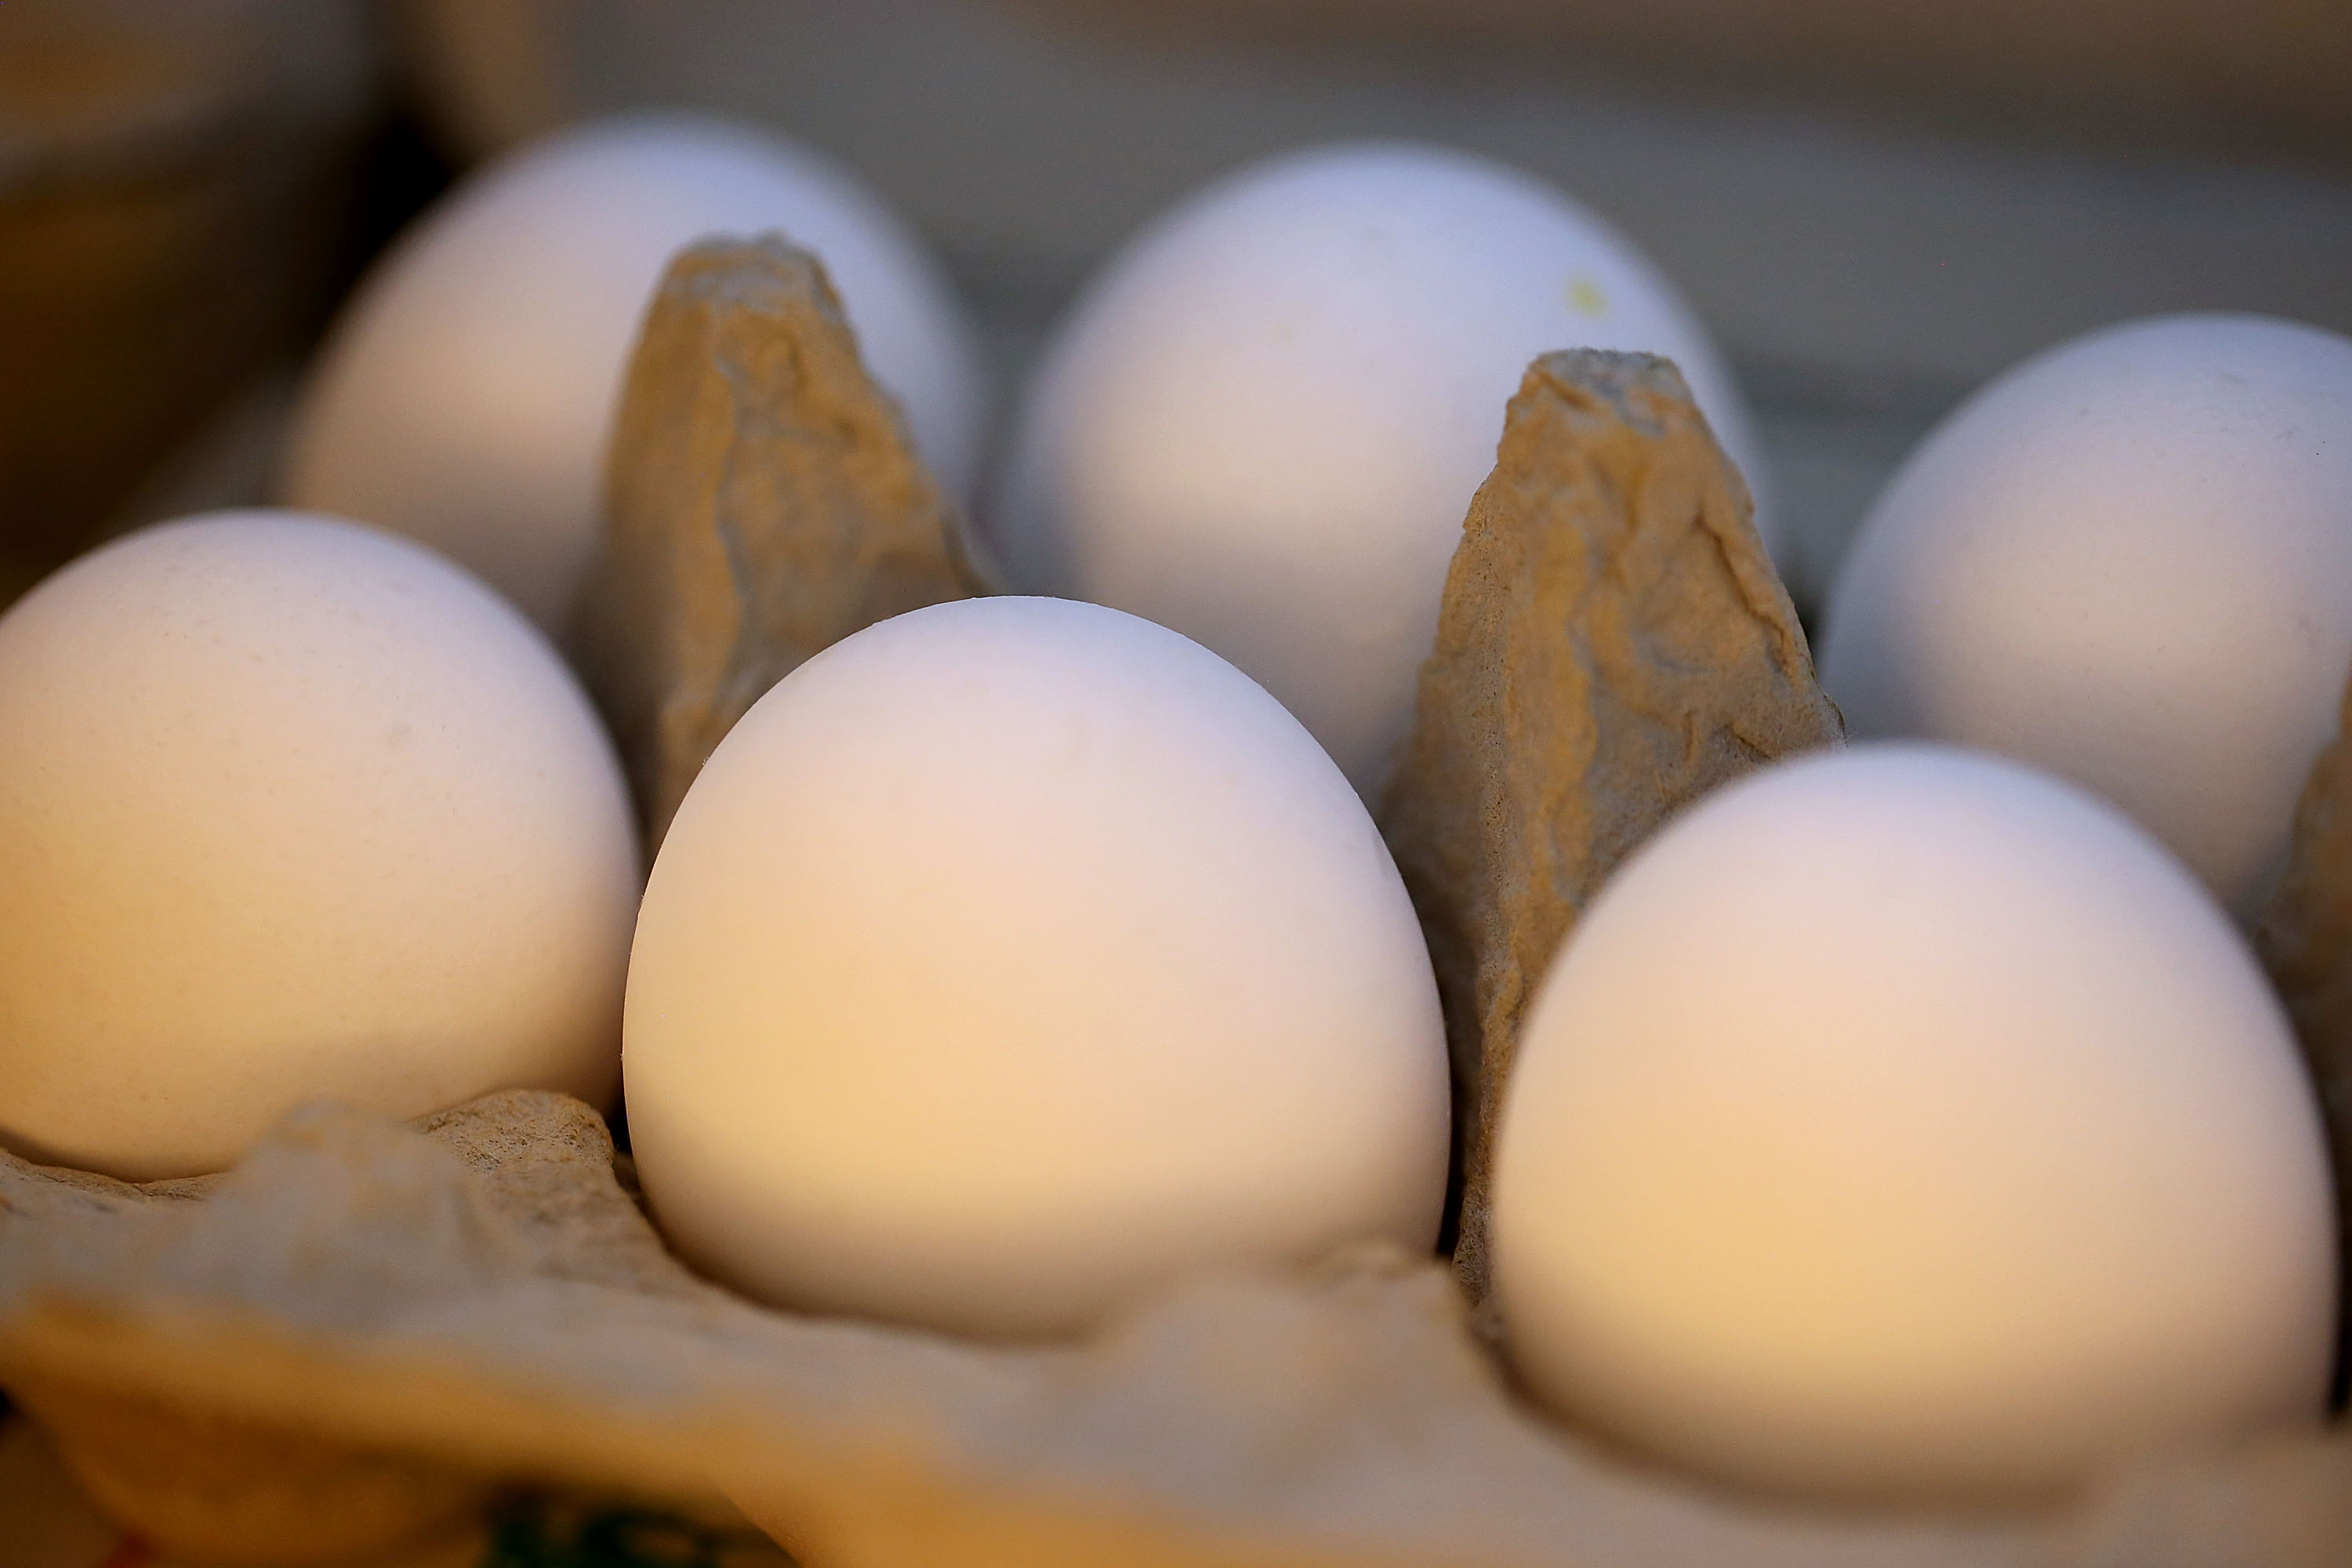 Egg Prices Continue Sharp Rise As Avian Flu Takes Tool On Supply